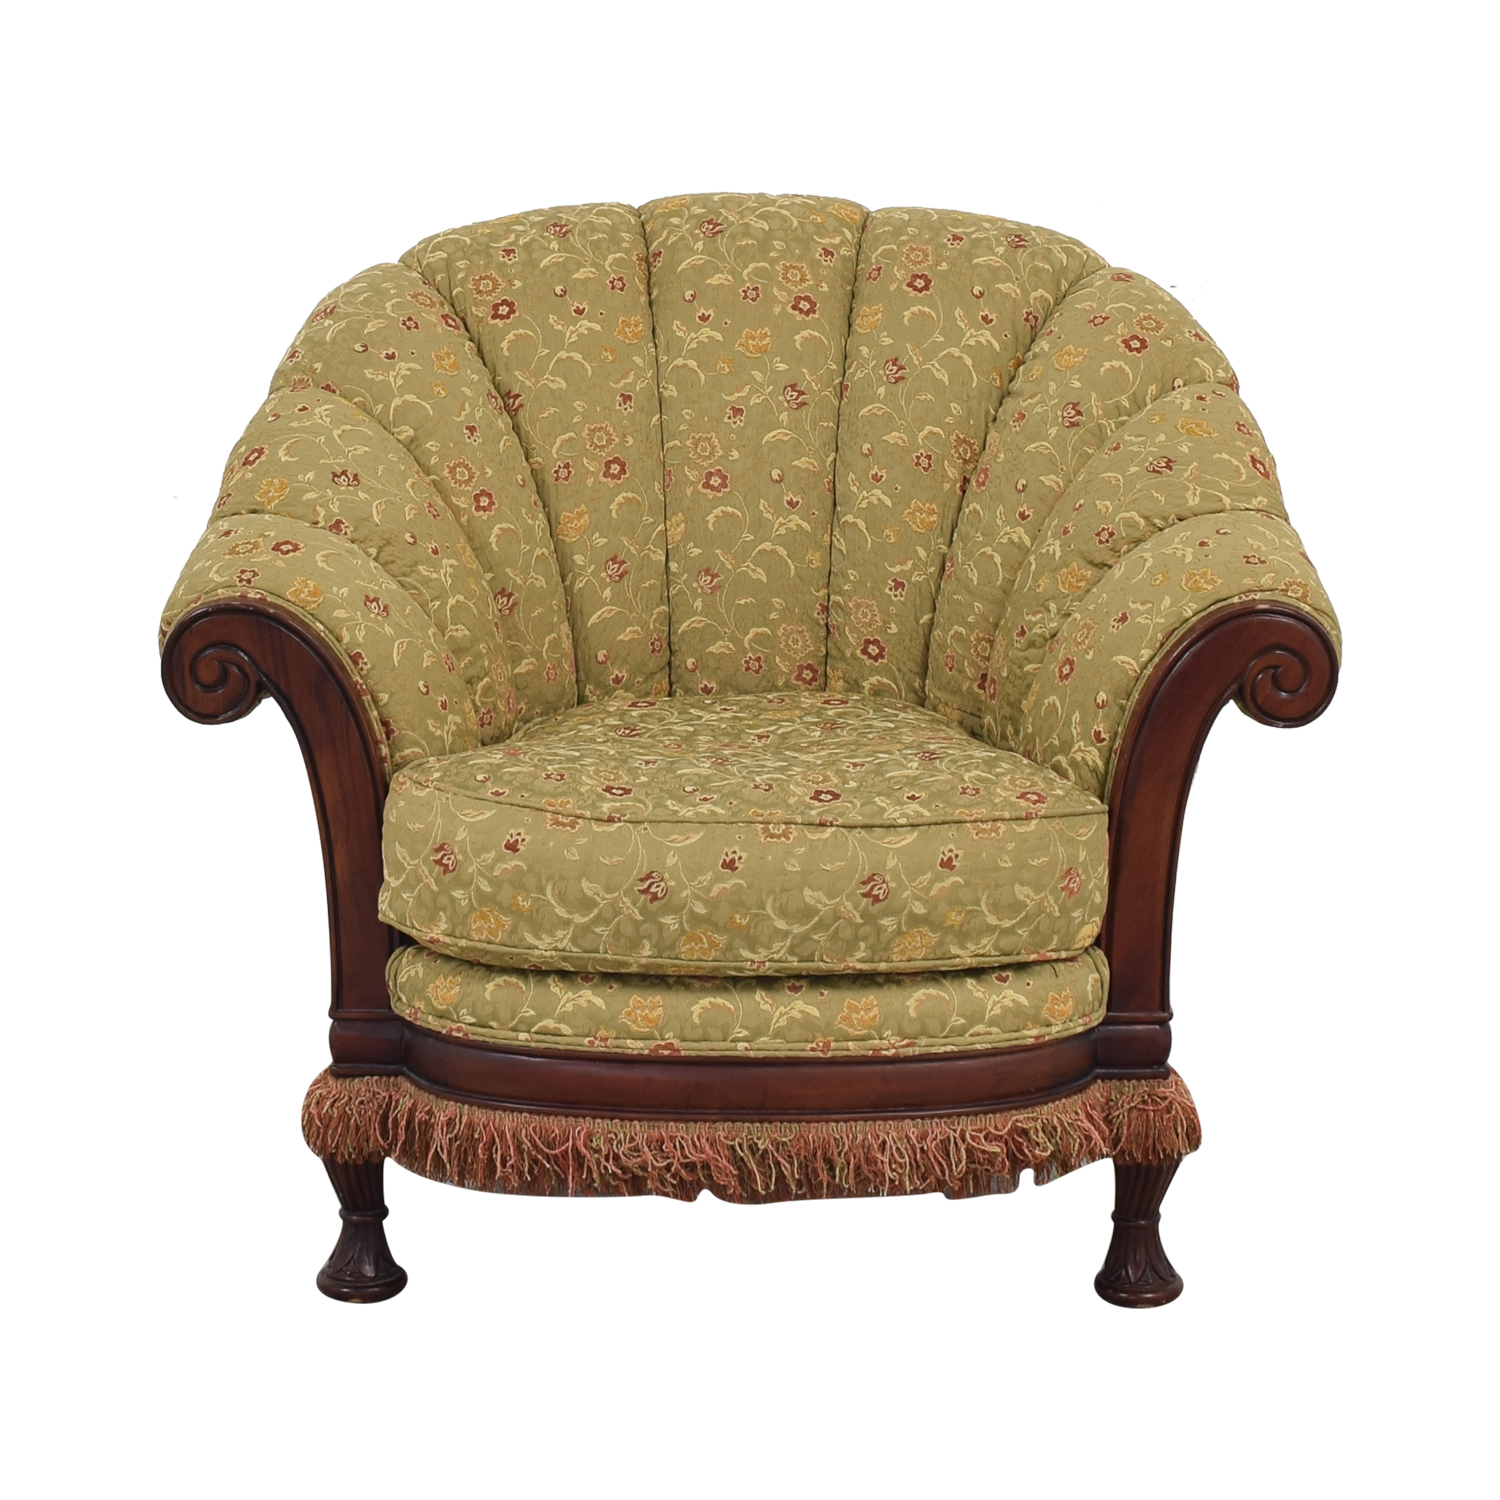 Vanguard Furniture Lauren Brooks Vanguard Furniture Scallop Back Rolled Arm Accent Chair ct